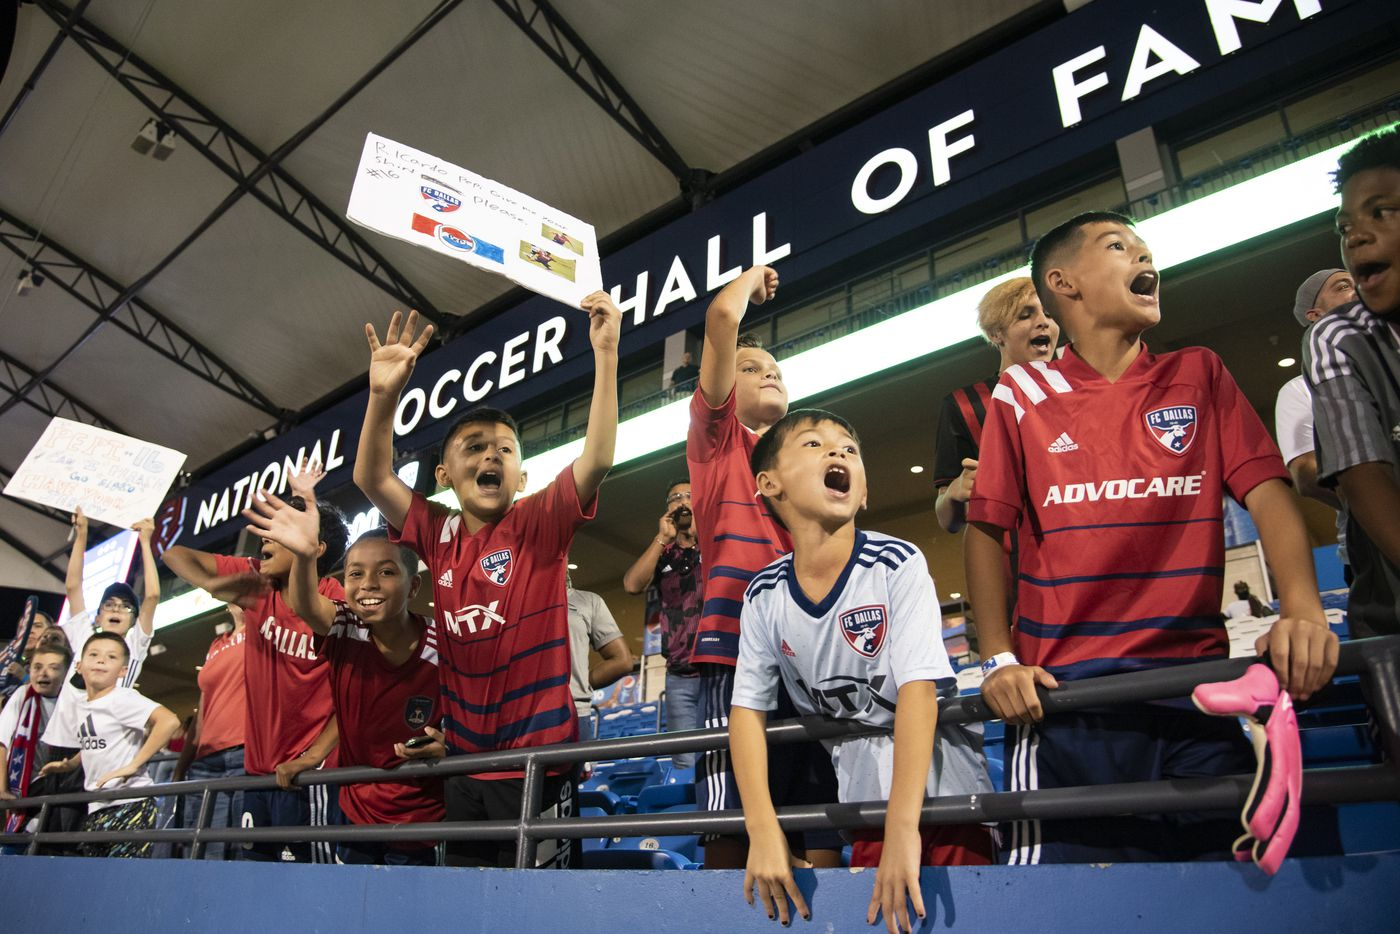 Young fans yell ÒPepi!Ó in hopes that he will come greet them after FC DallasÕ home game against the San Jose Earthquakes at Toyota Stadium in Frisco, Texas on Saturday, September 11, 2021. The game ended in a 1-1 tie. (Emil Lippe/Special Contributor)